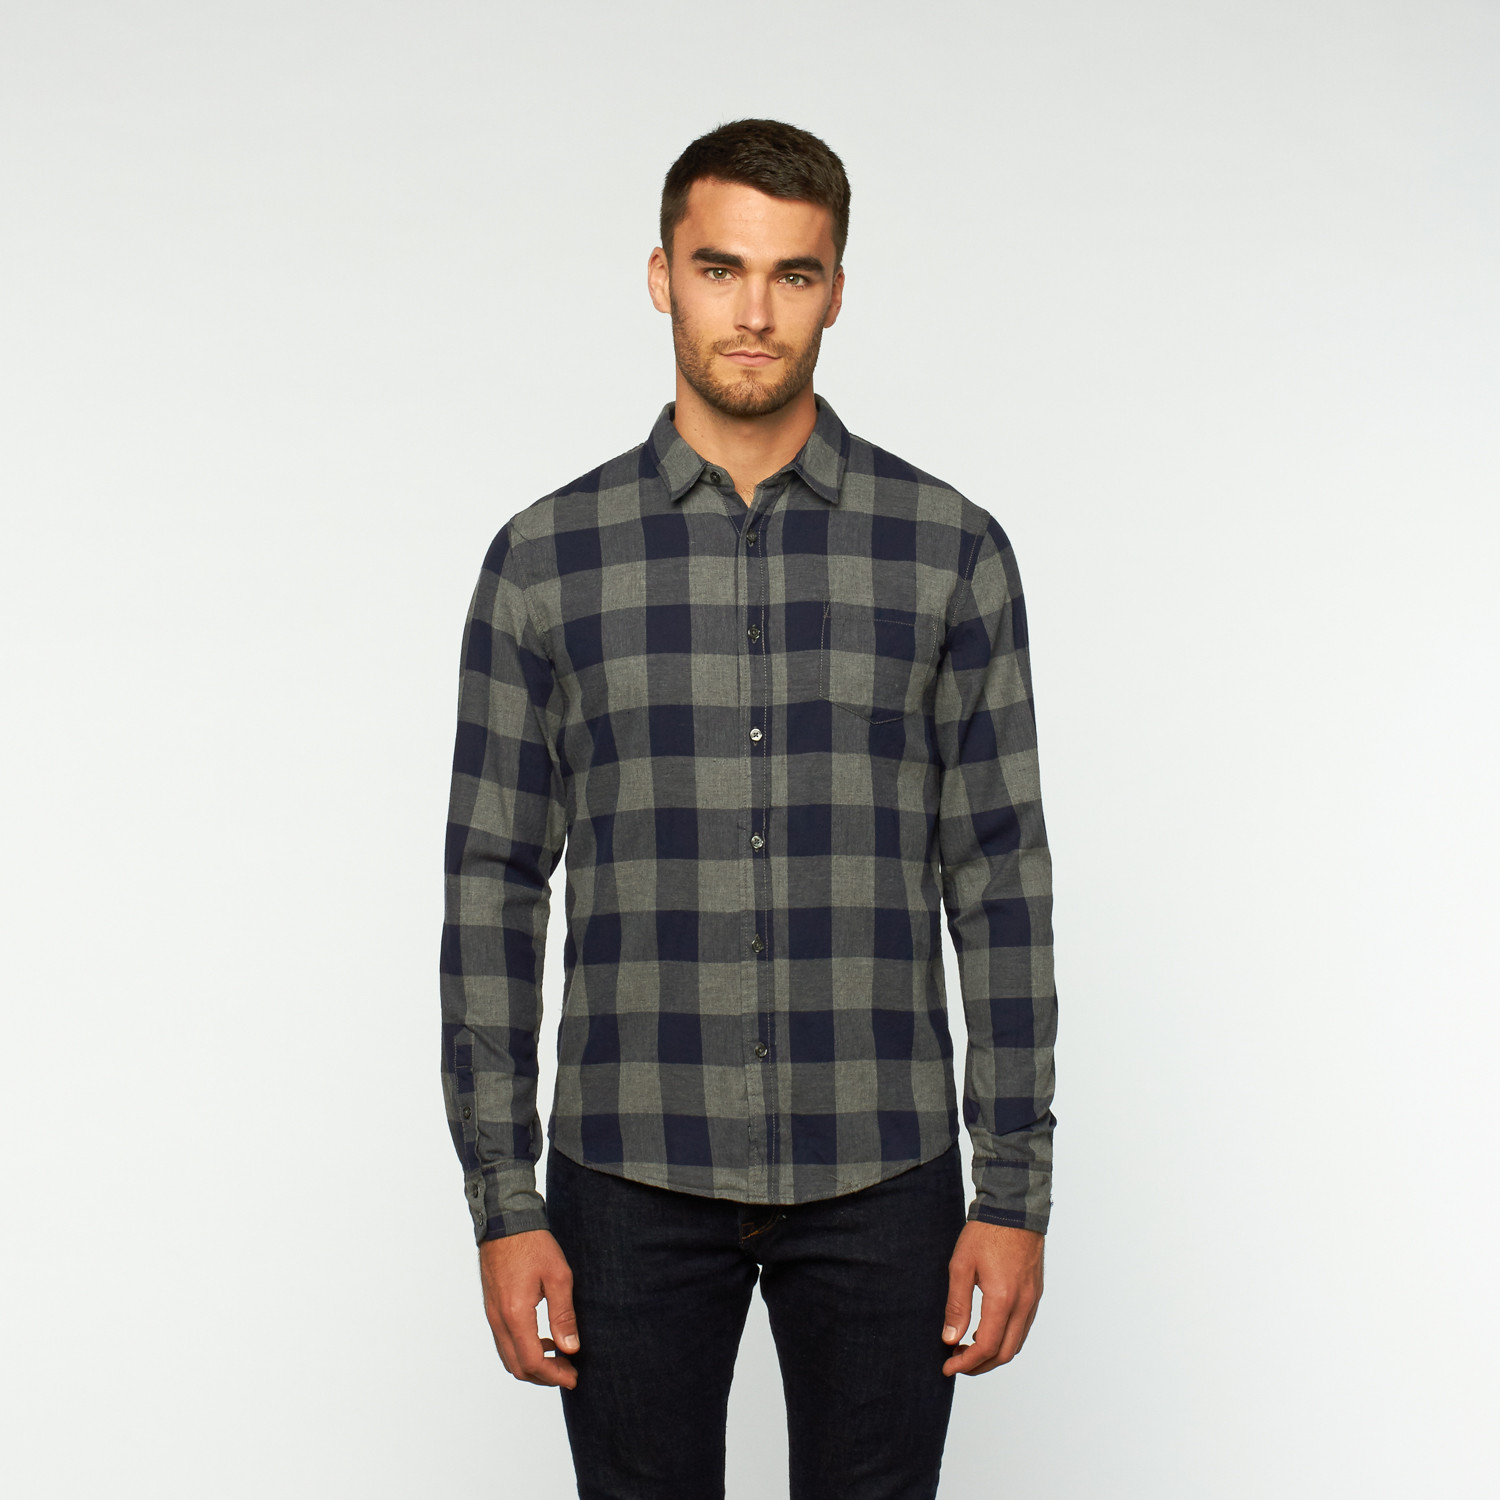 Mason Button Up Shirt Navy S Px Clothing Touch Of